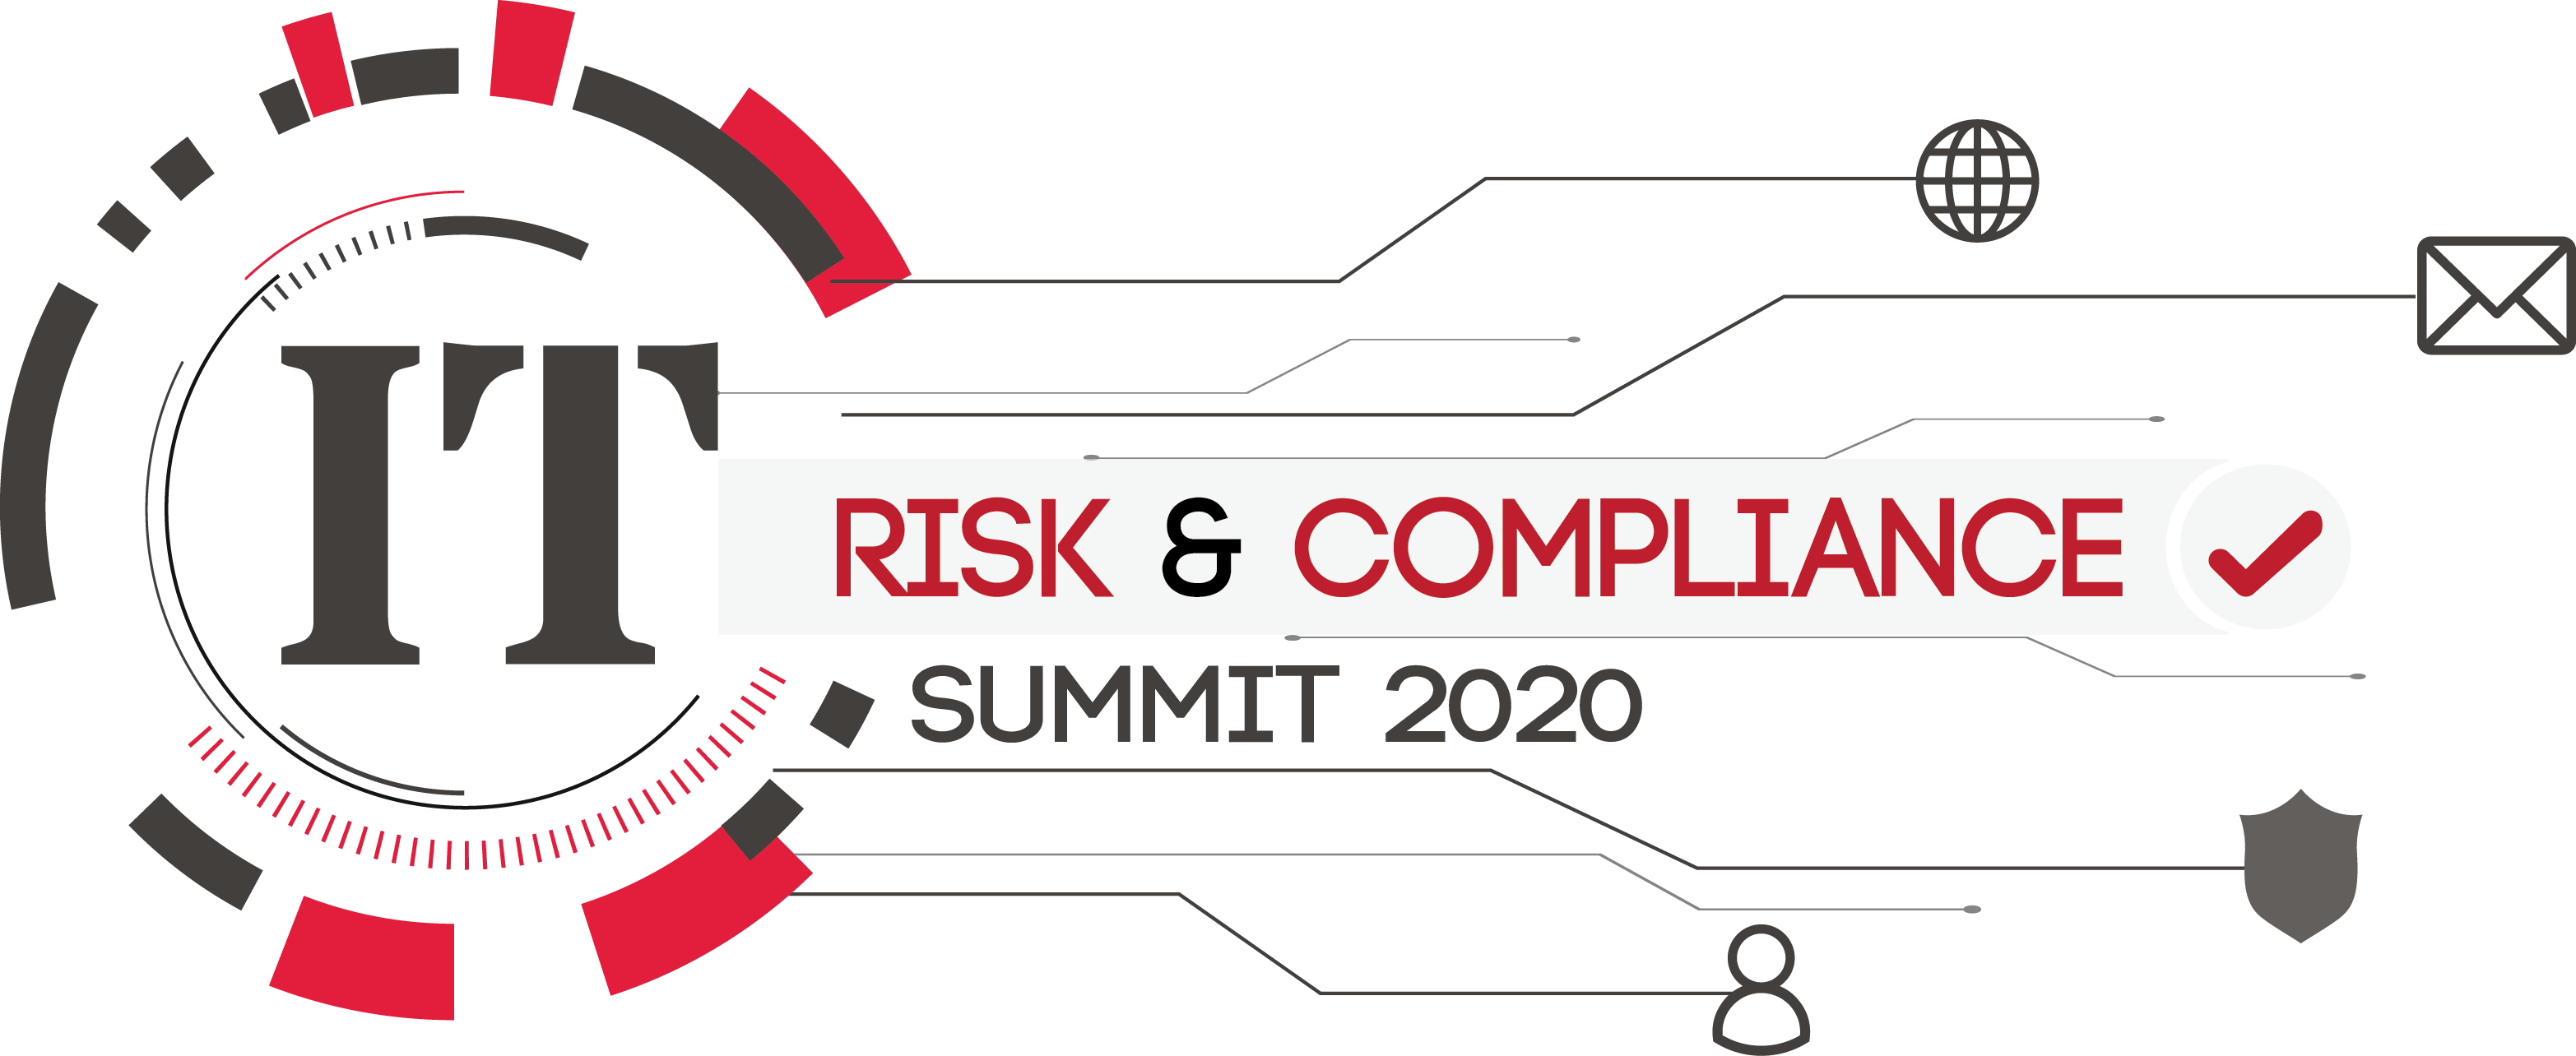 it risk and compliance summit 2020 logo